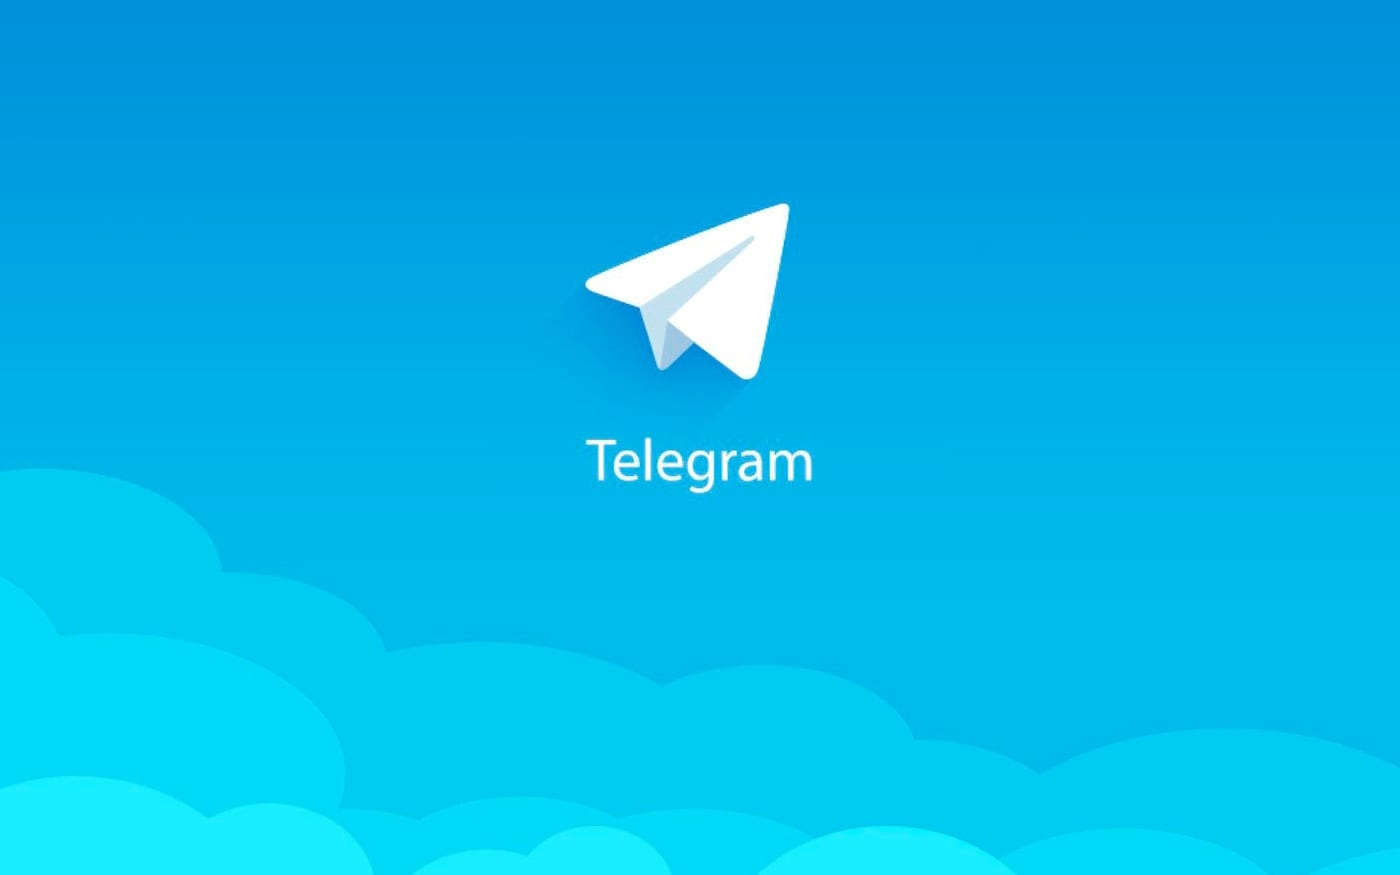 Telegram ícone app